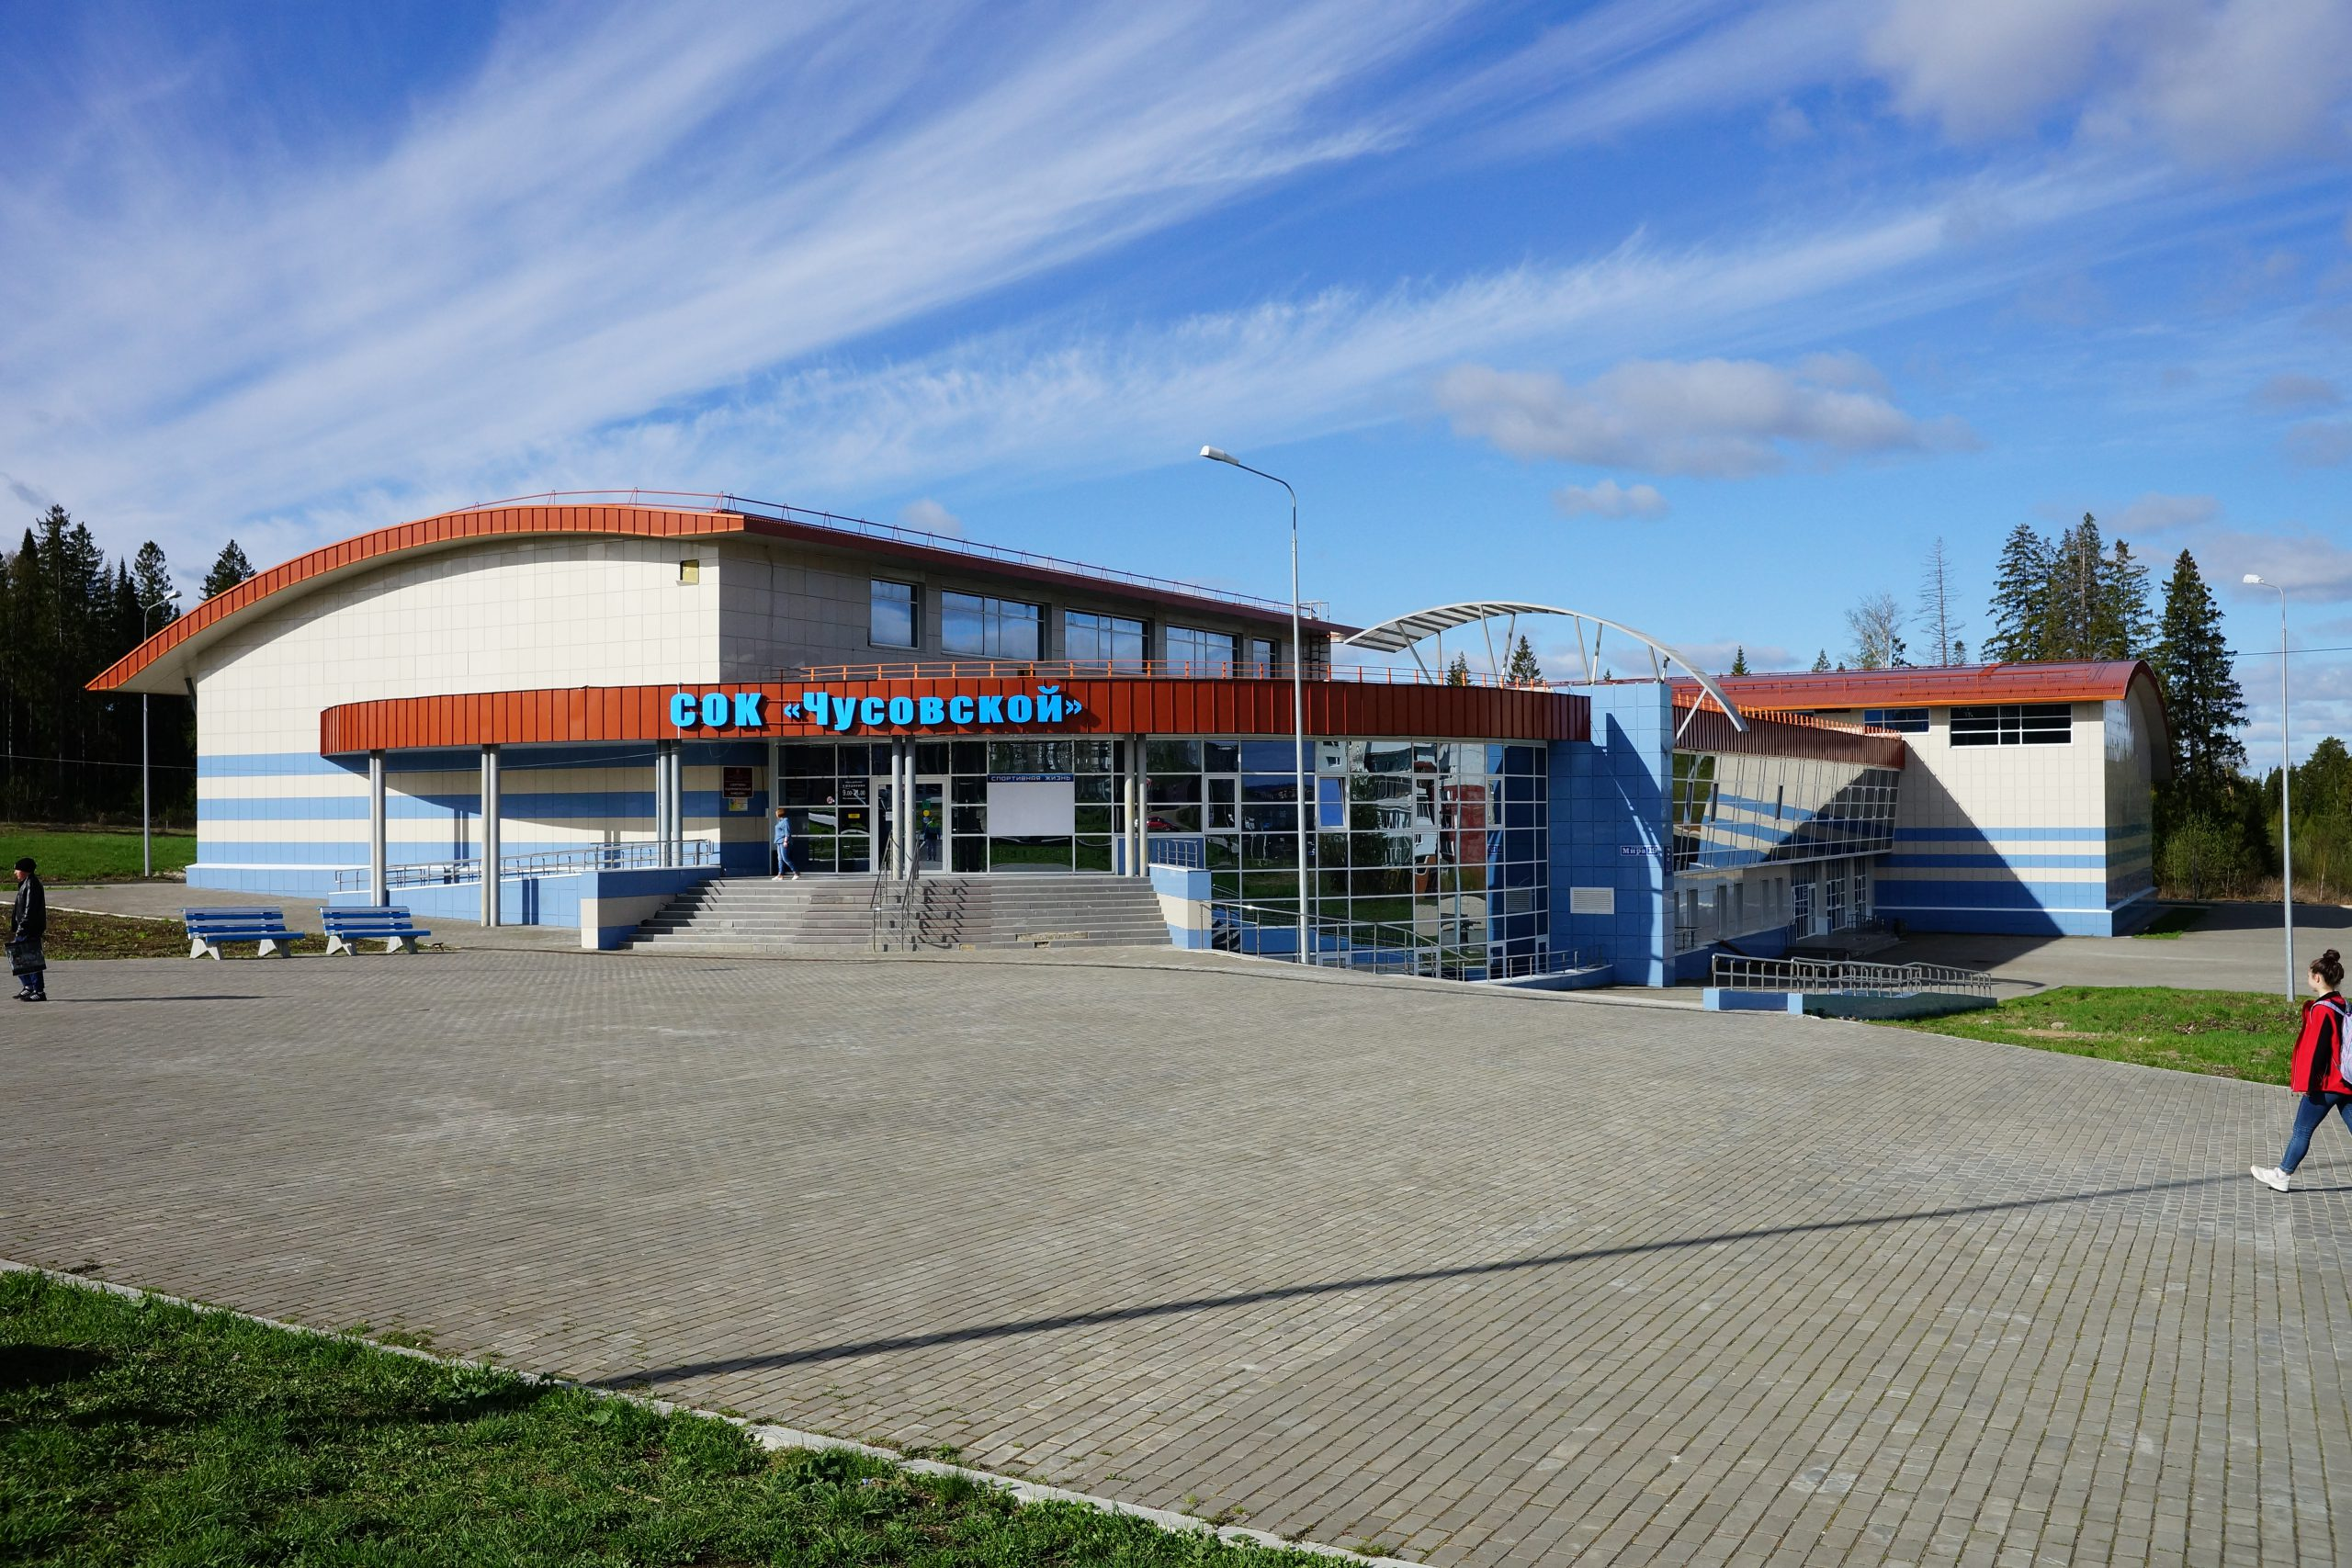 The sports and fitness complex in Chusovoy